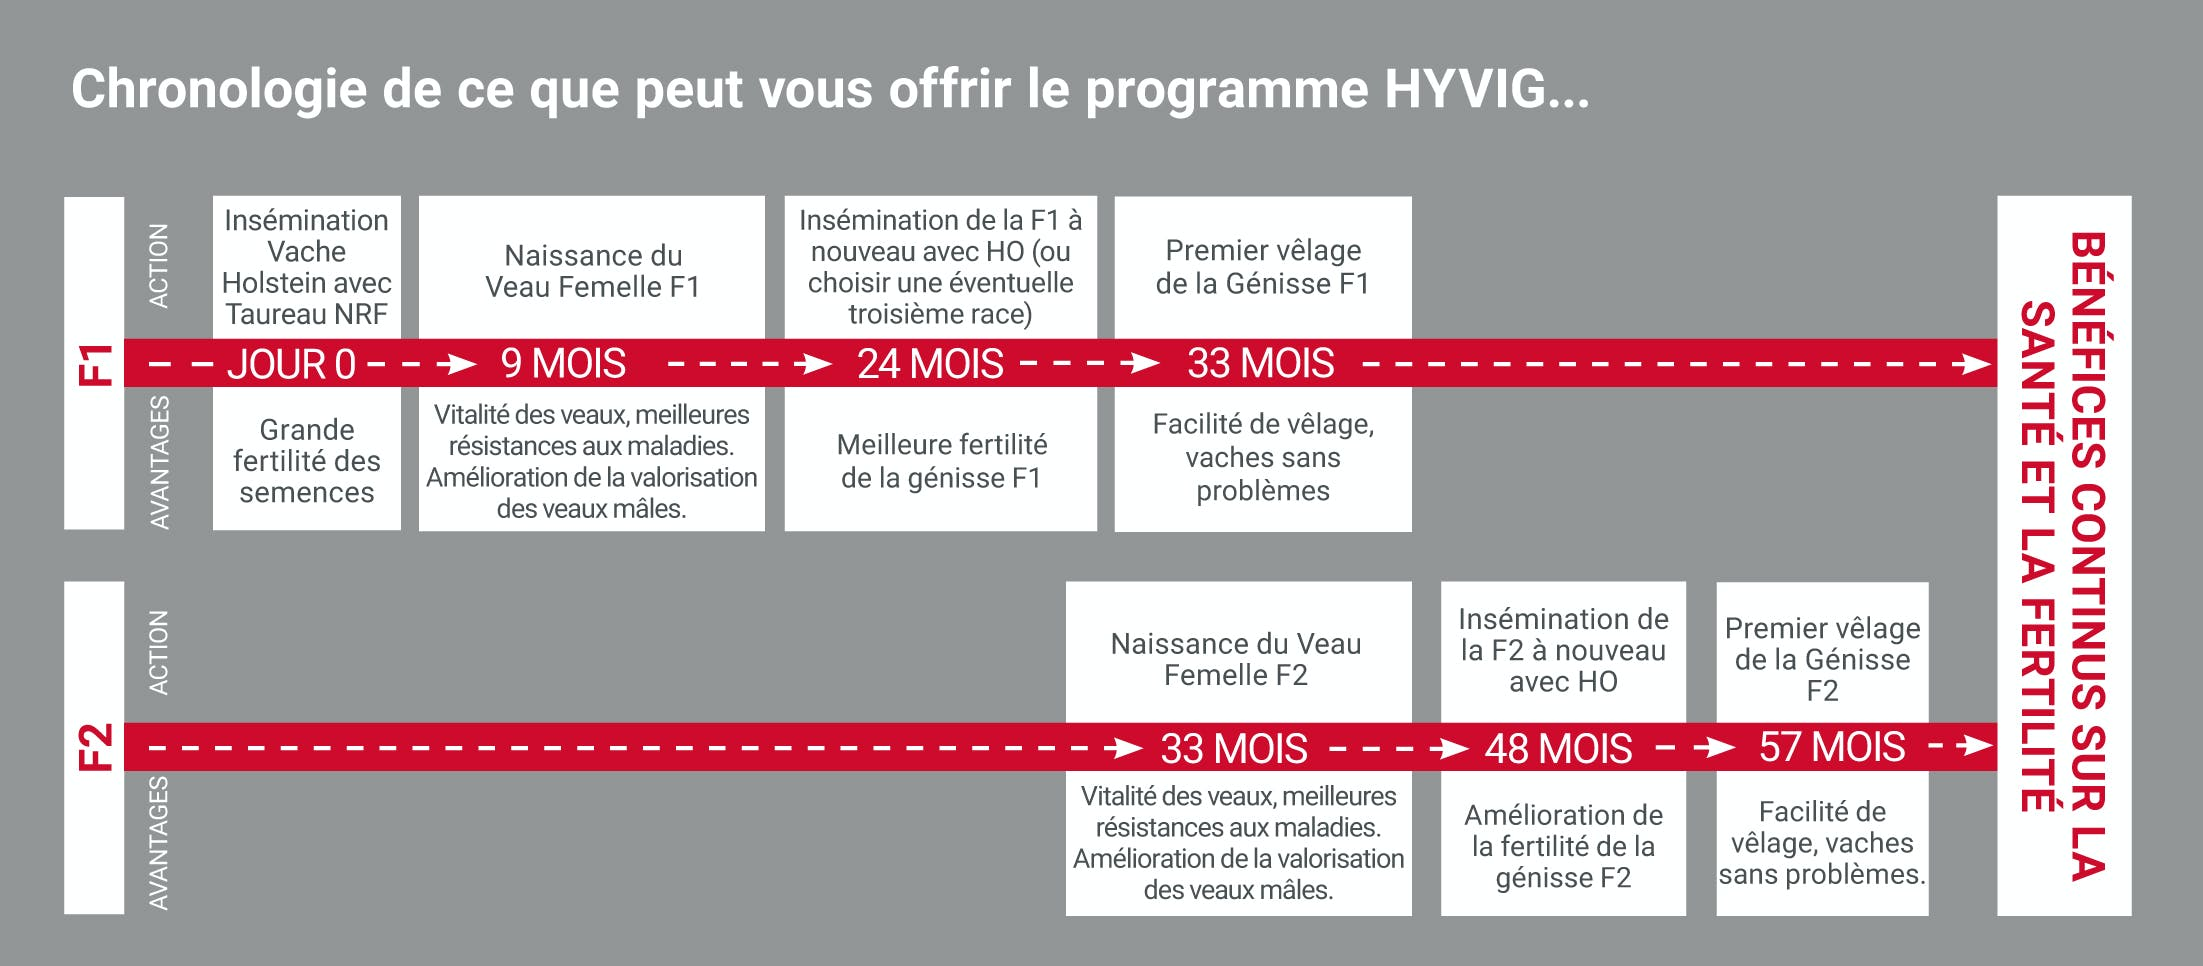 1106-french-hyvig-brochure-261016-5